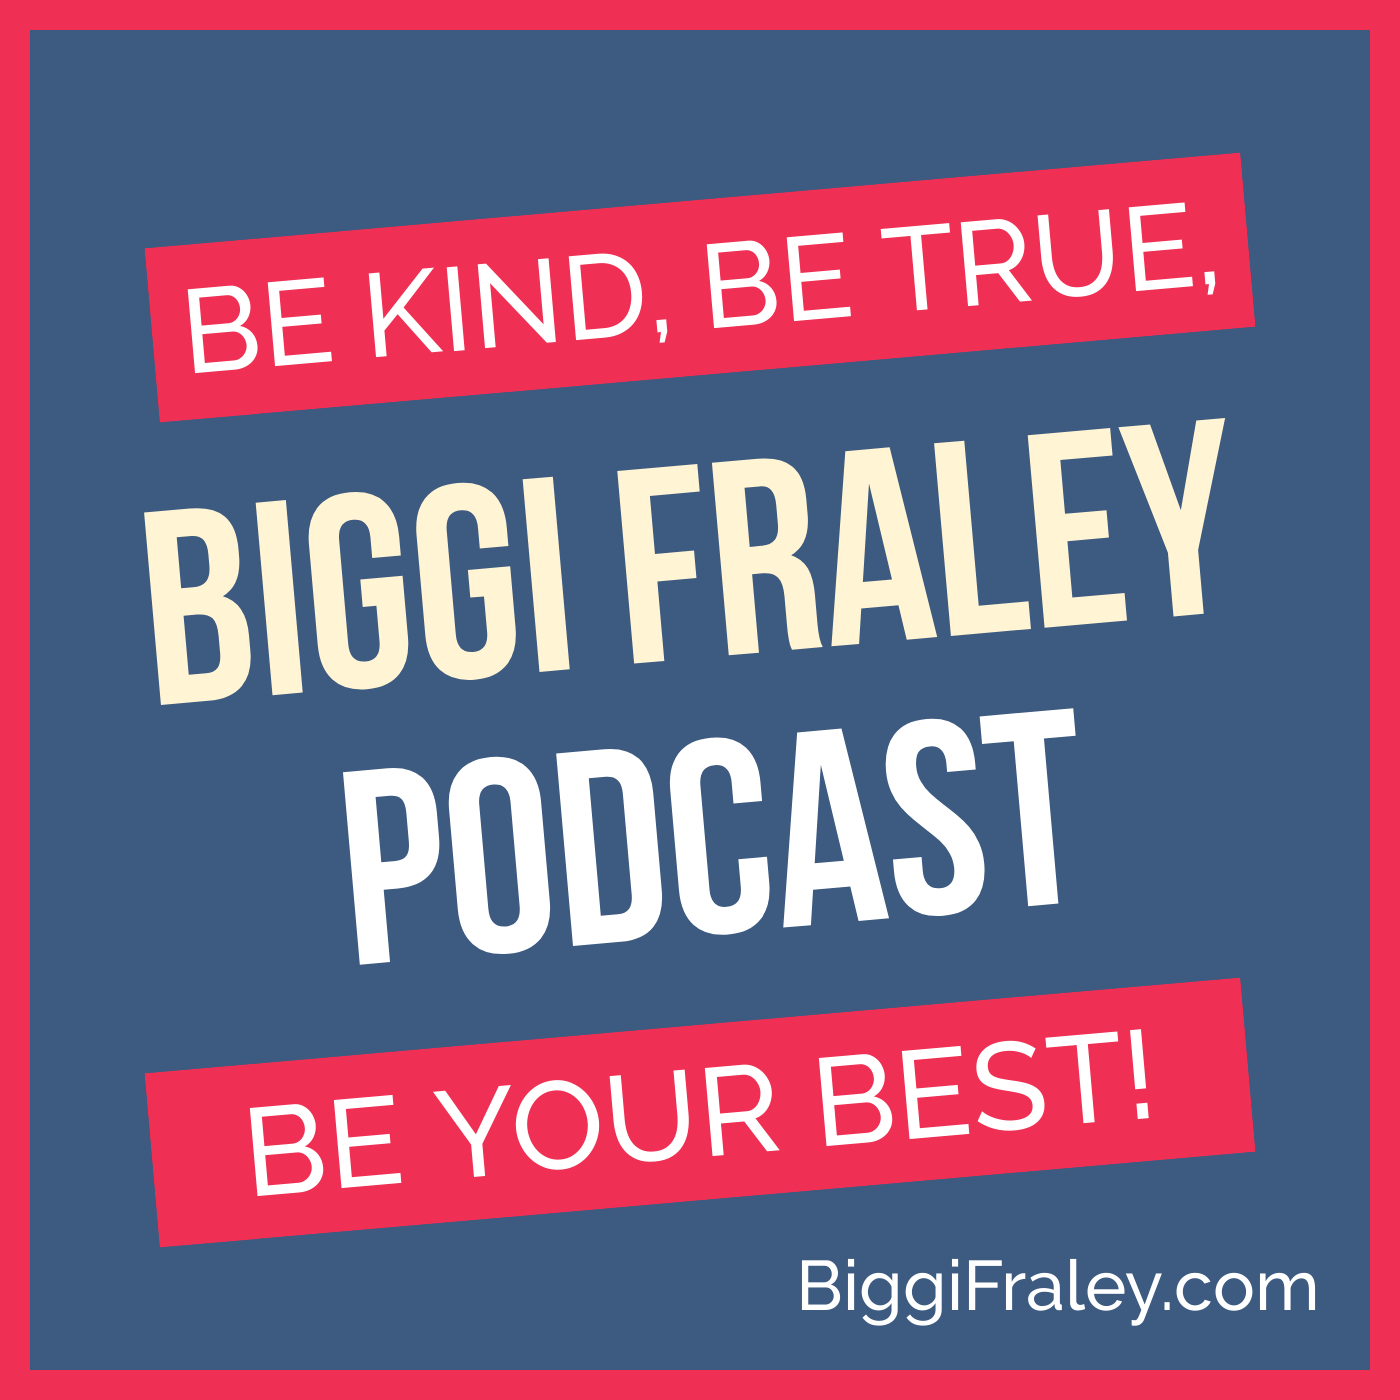 The Biggi Fraley Podcast